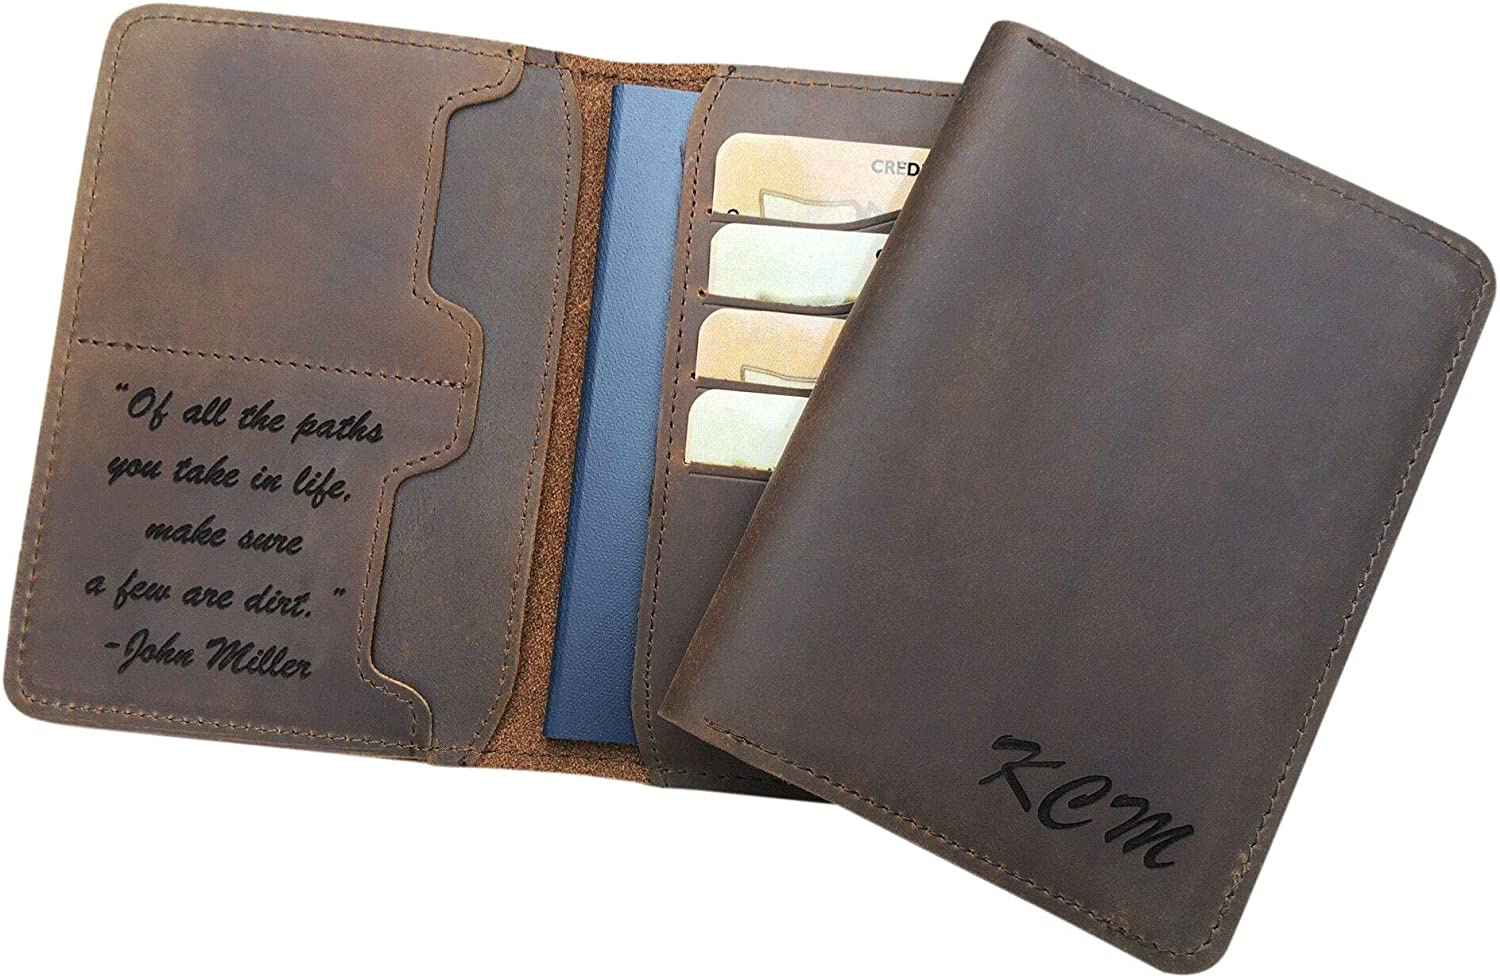 Personalized Genuine Leather Washington Mall Passport Custom with Max 69% OFF Cover Message